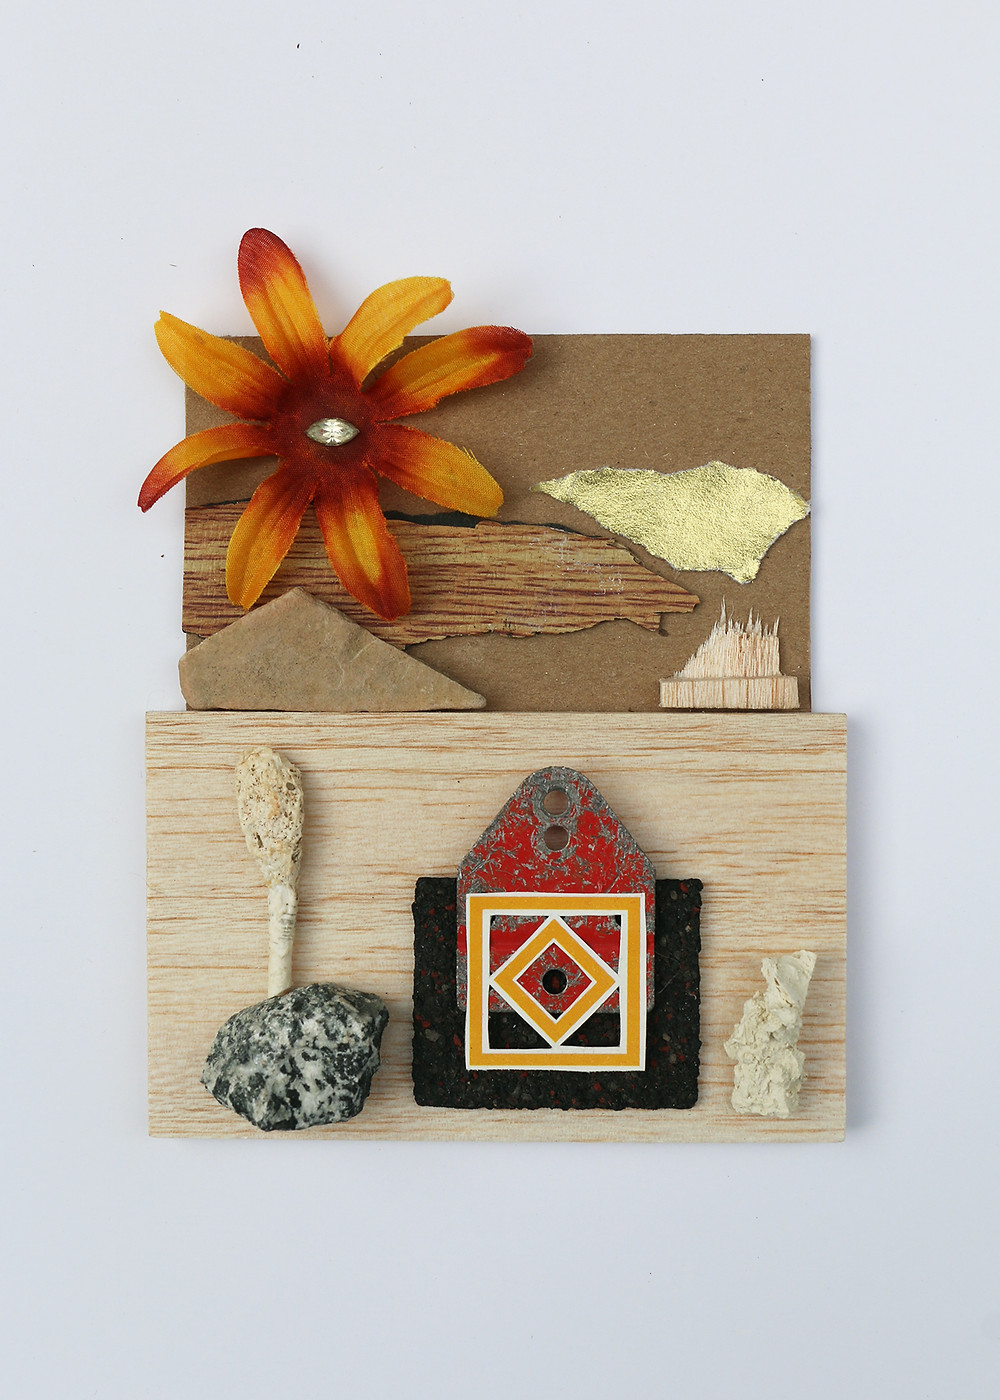 Wood collage with orange and red flower, rocks, and other shapes layered on top